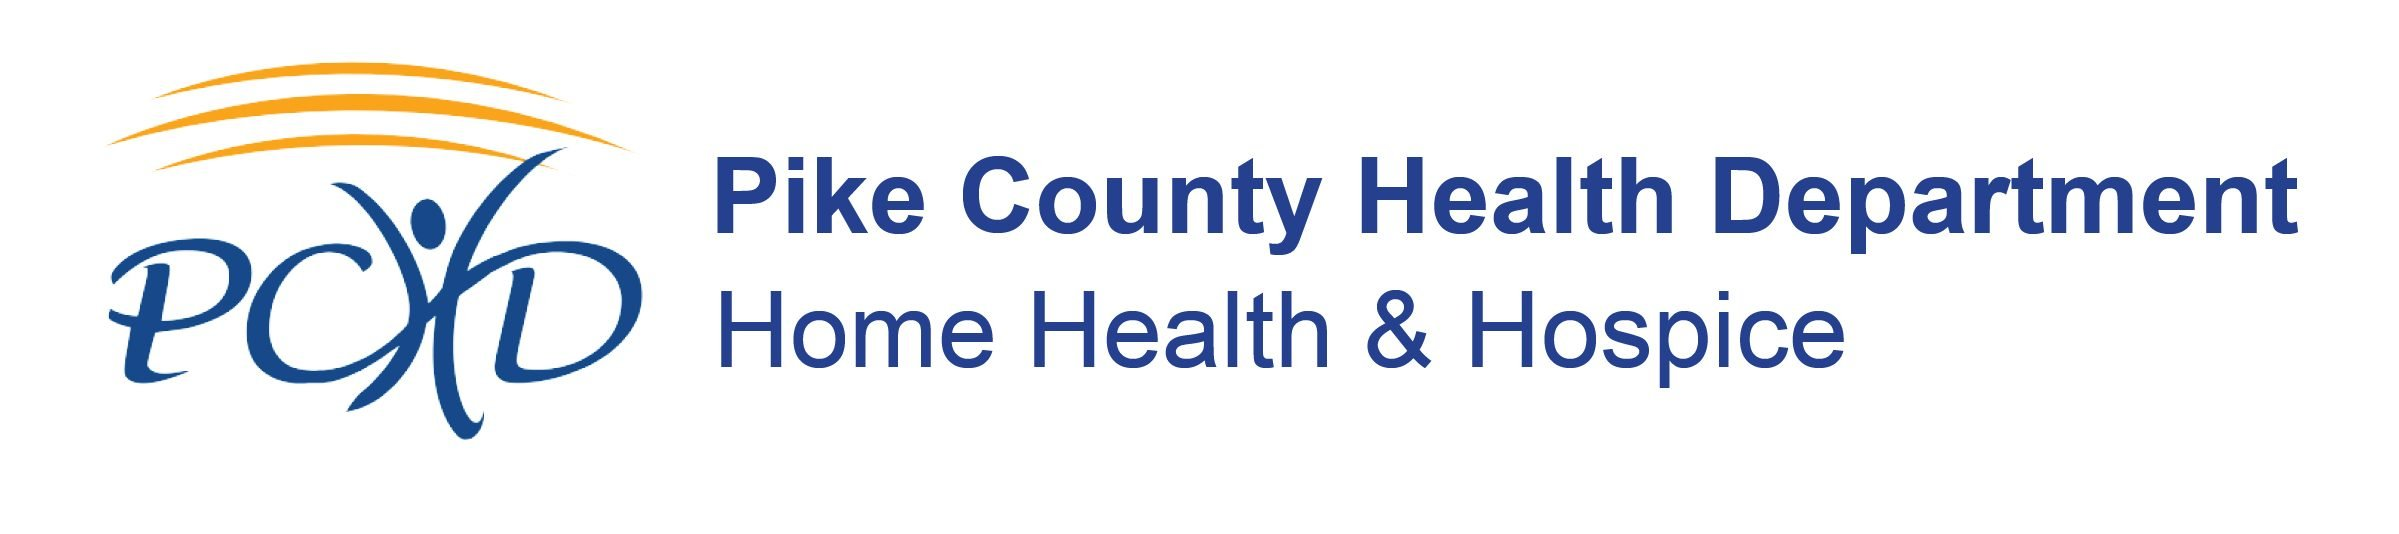 Pike County Health Department Home Health & Hospice